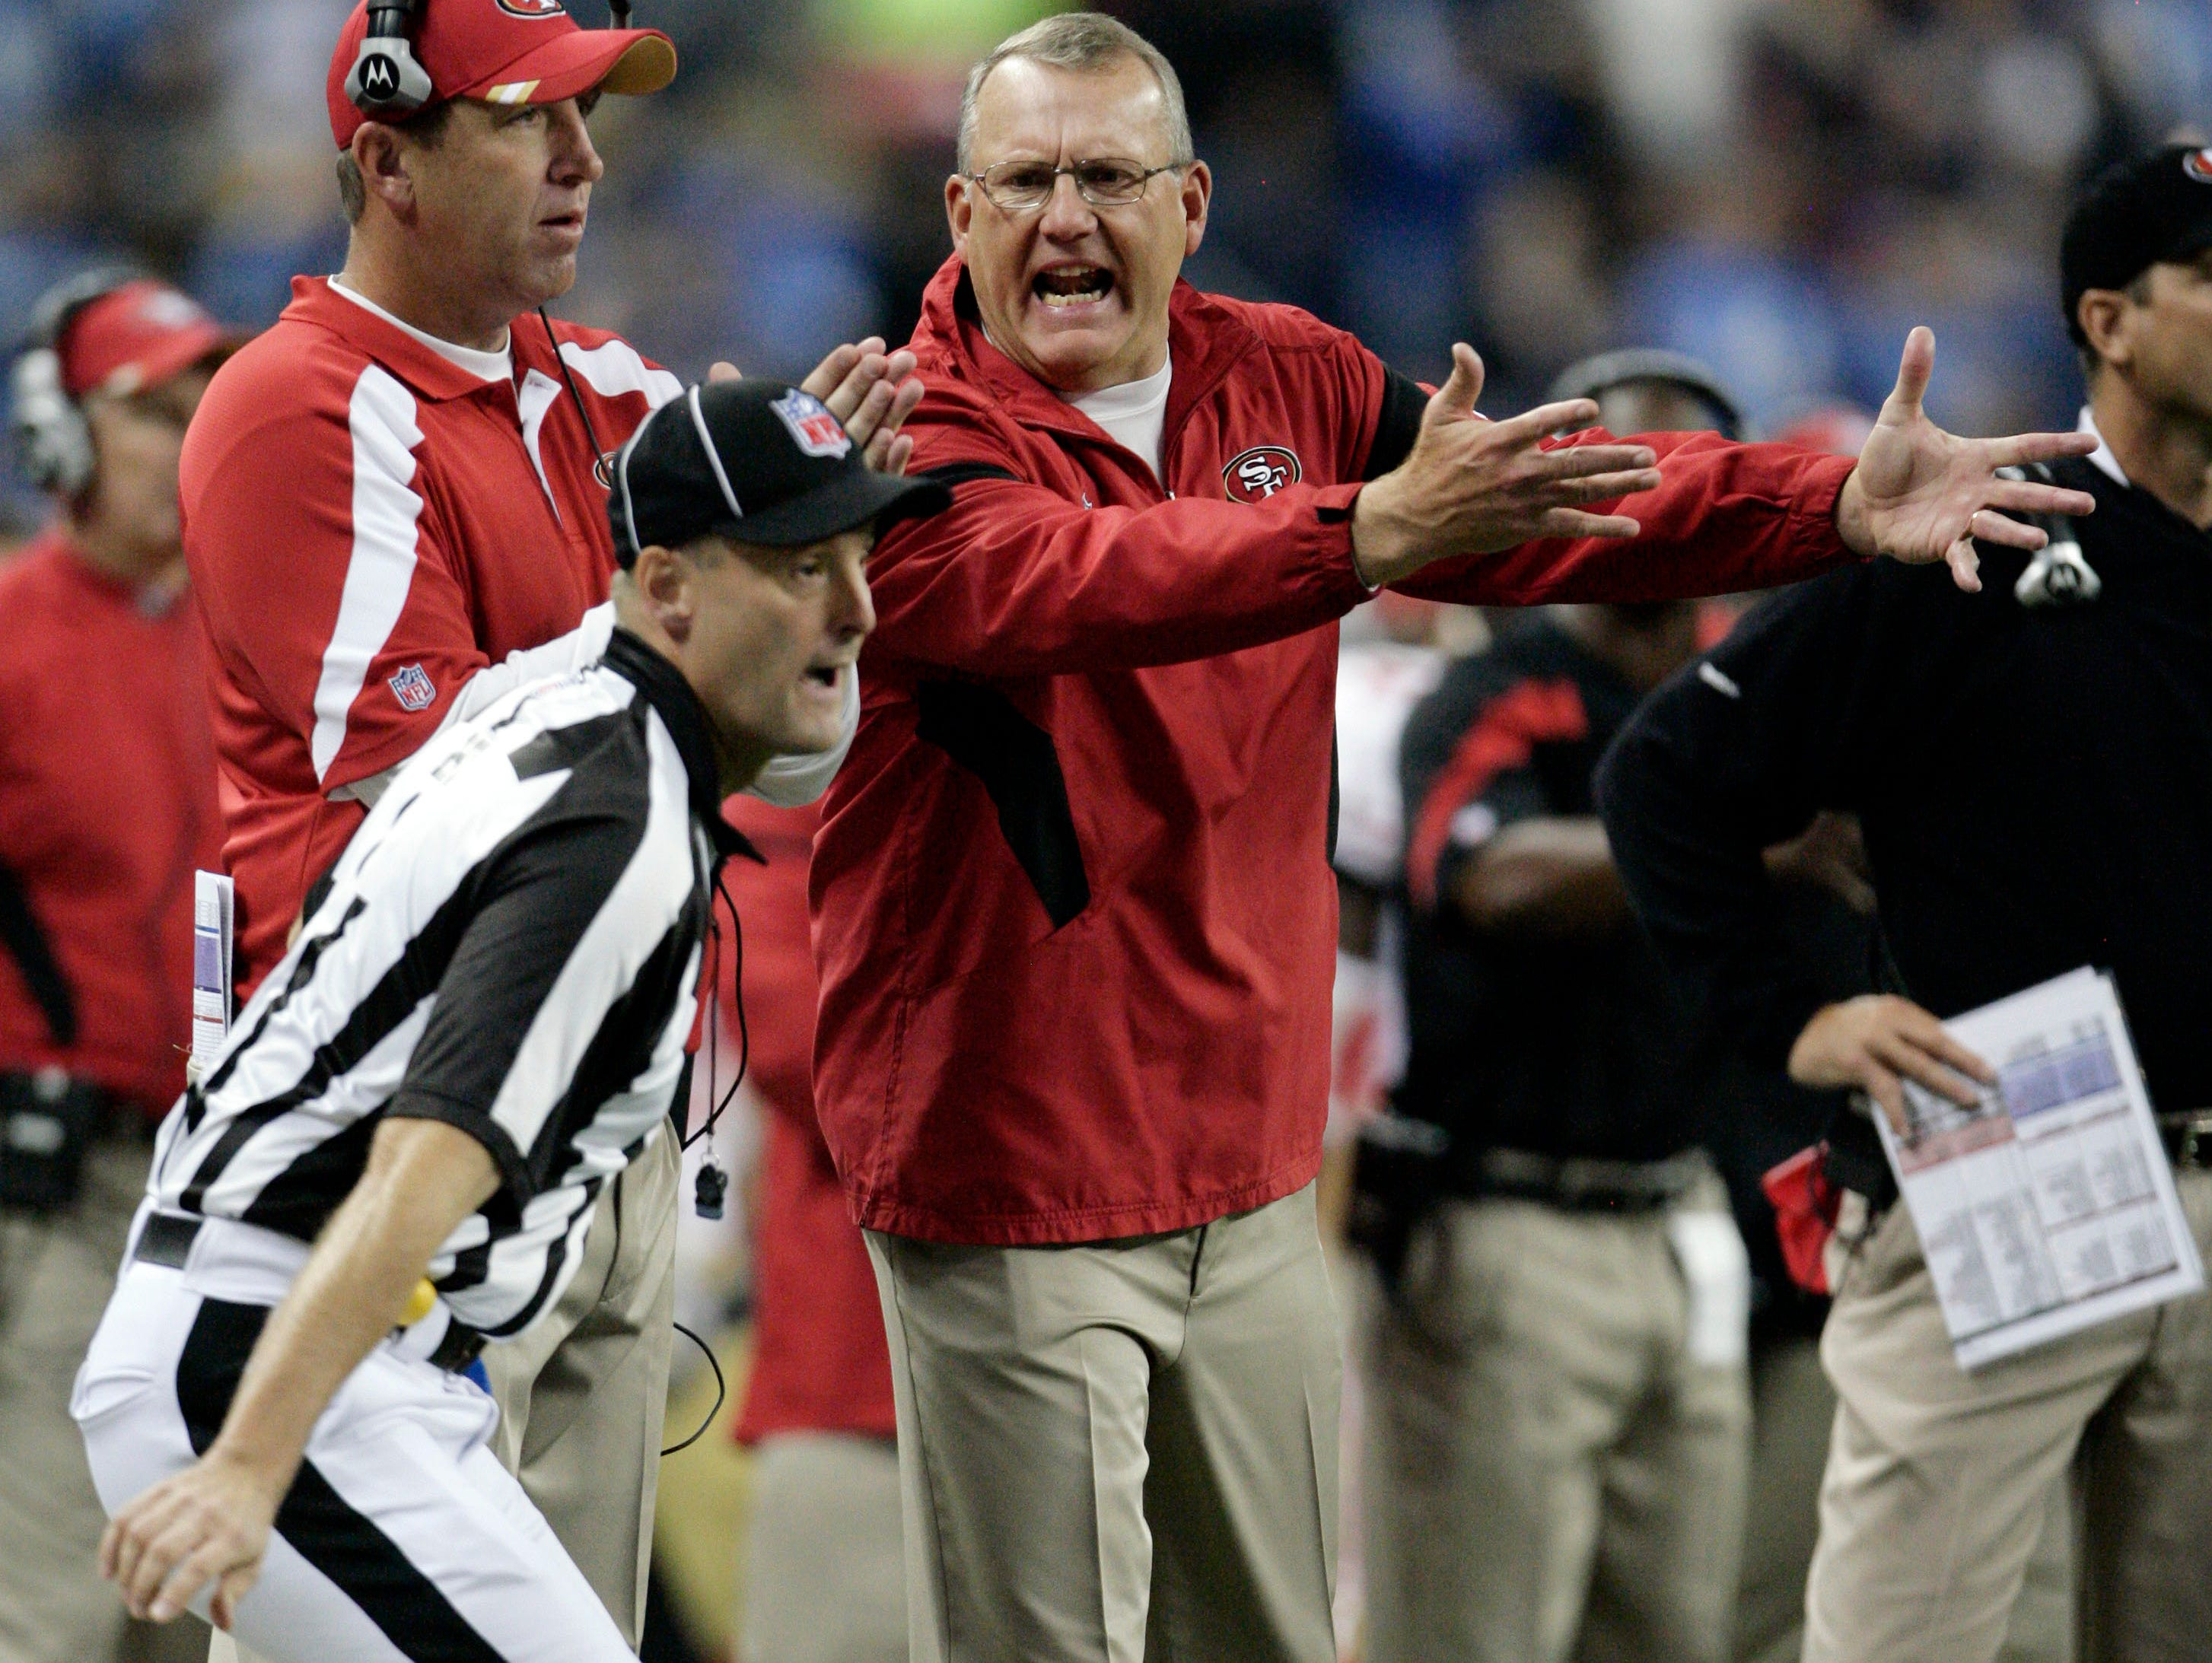 He's used to it: Head linesman Dana McKenzie worked through the vocal protest of San Francisco 49ers assistant head coach Brad Seely in a game last fall.